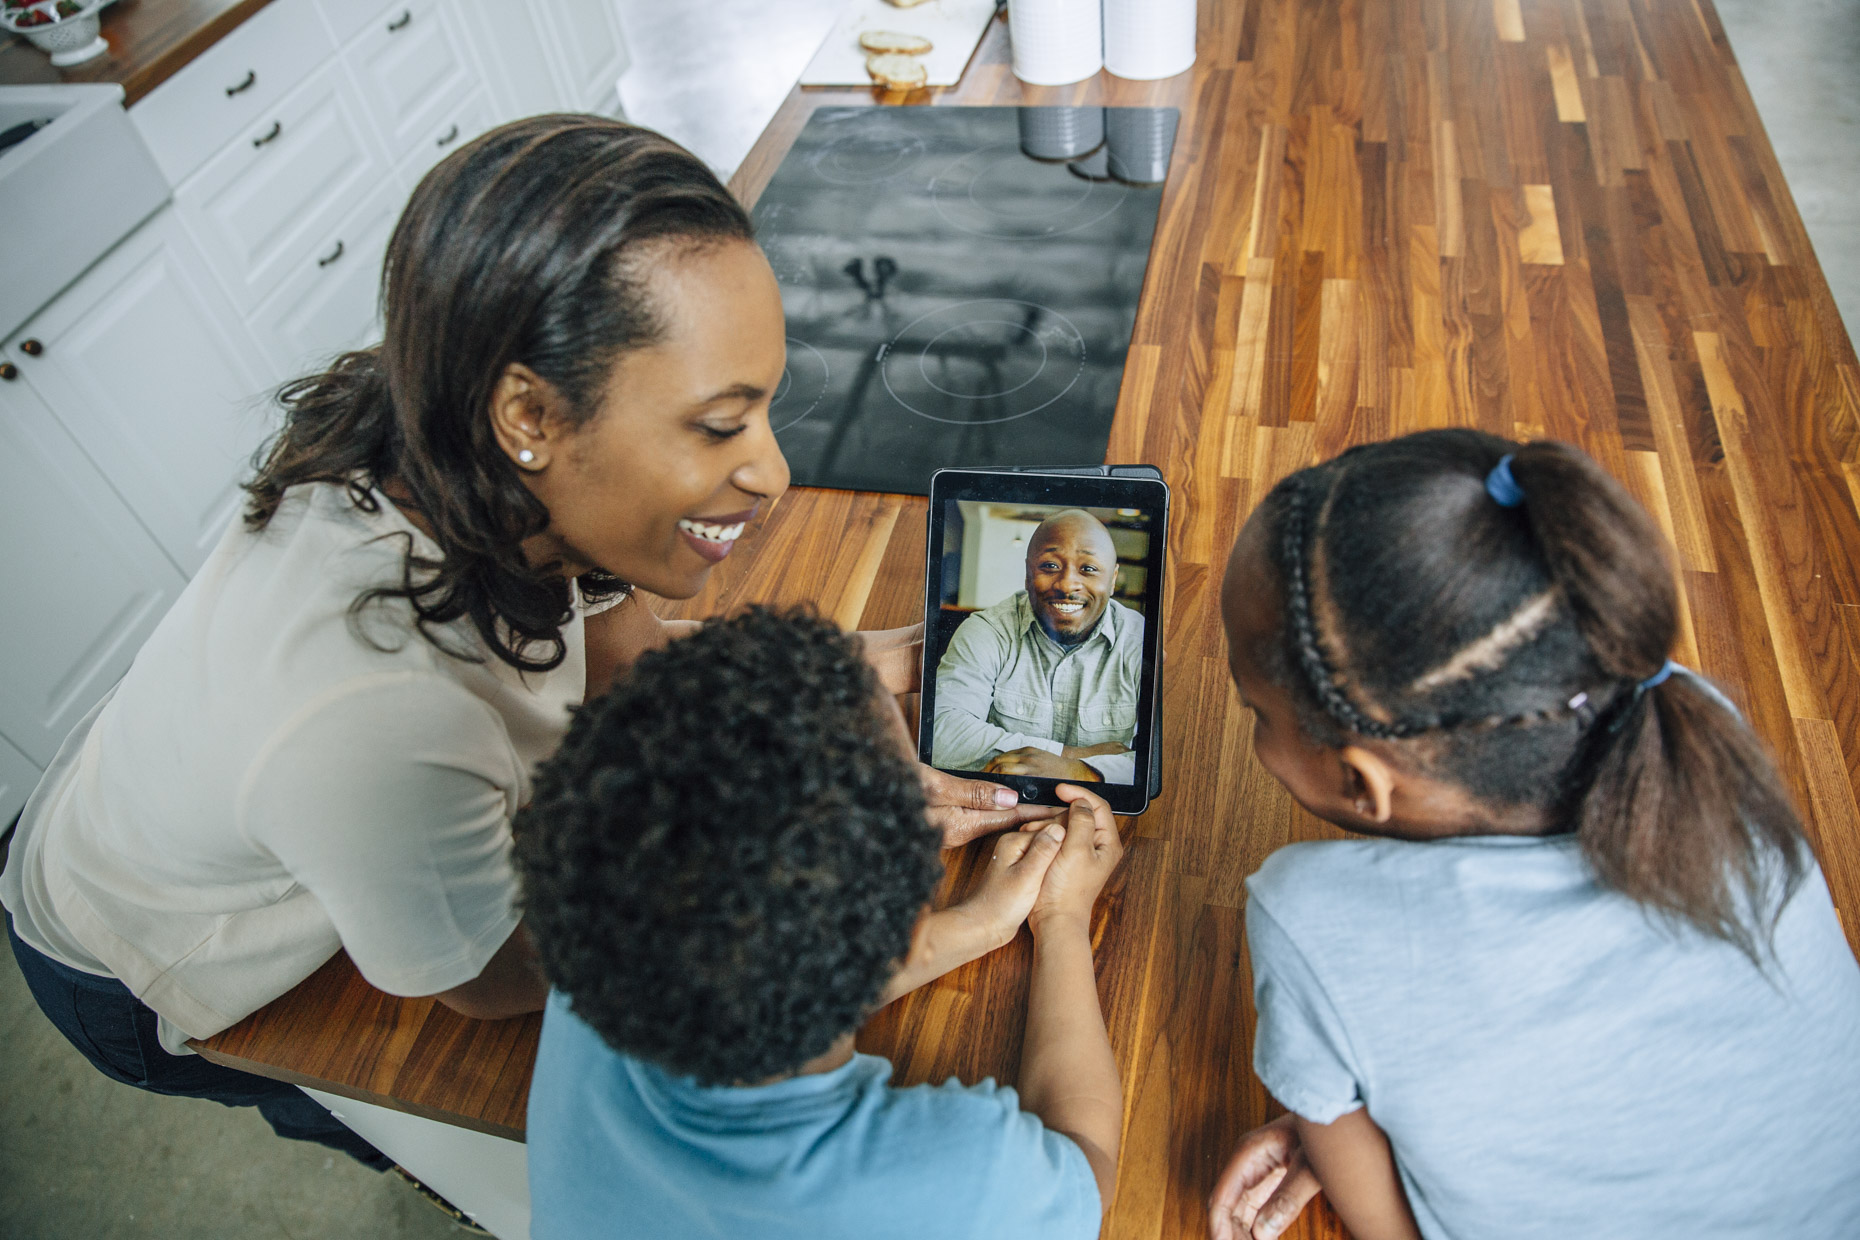 Woman and kids video chatting with dad on iPad tabled computer in kitchen